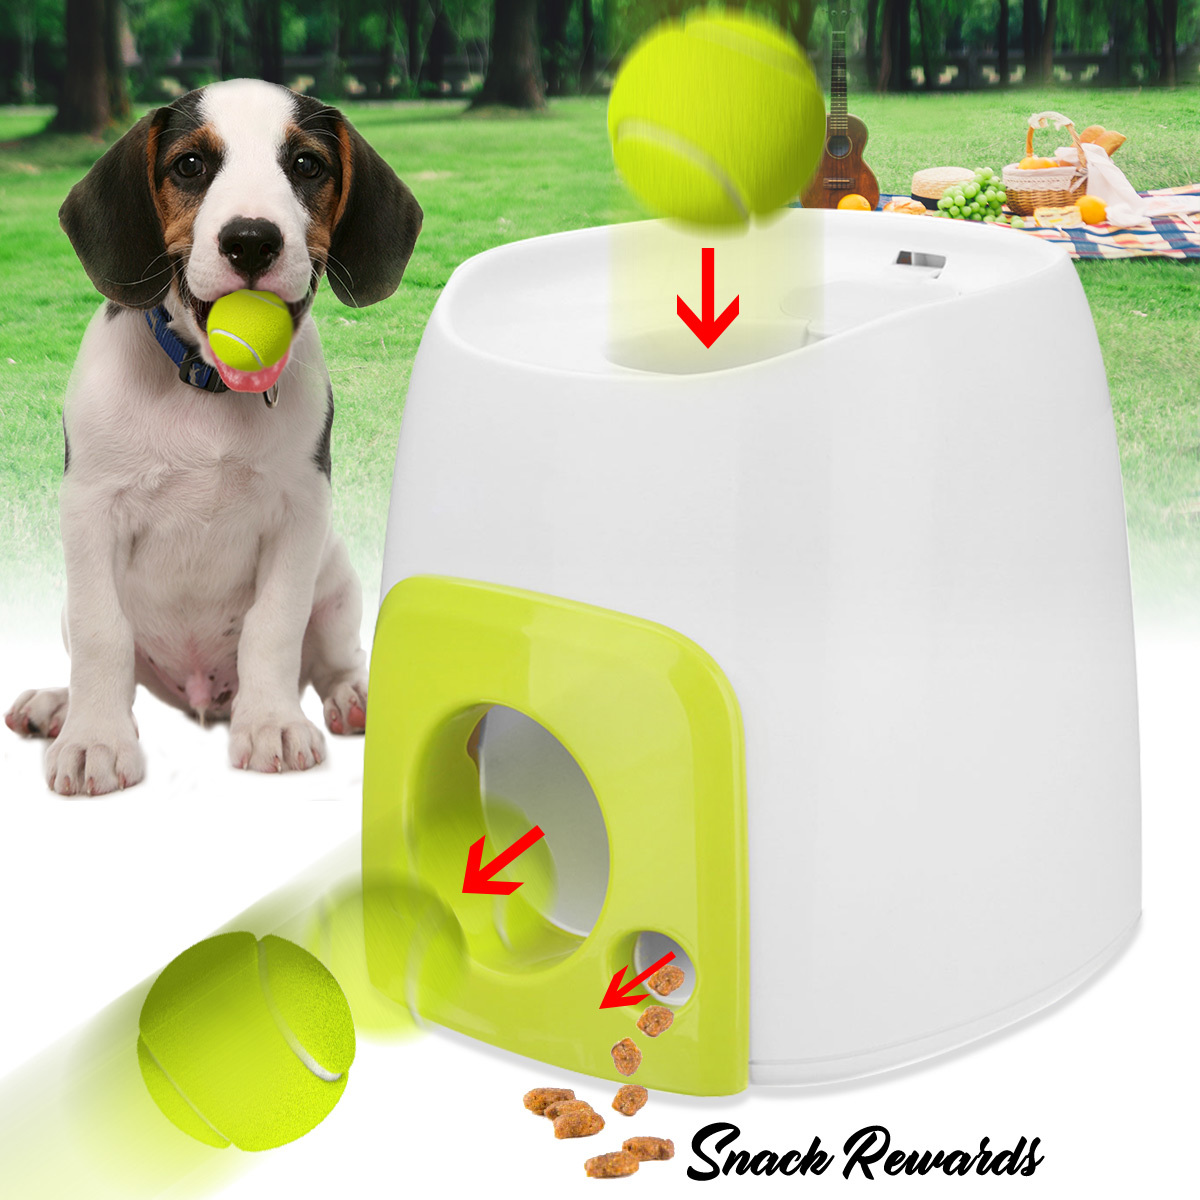 Nicrew Pet Dog Toy Automatic Interactive Ball Launcher Tennis Ball Rolls Out Machine Launching Fetching Balls Dog Training ToolNicrew Pet Dog Toy Automatic Interactive Ball Launcher Tennis Ball Rolls Out Machine Launching Fetching Balls Dog Training Tool